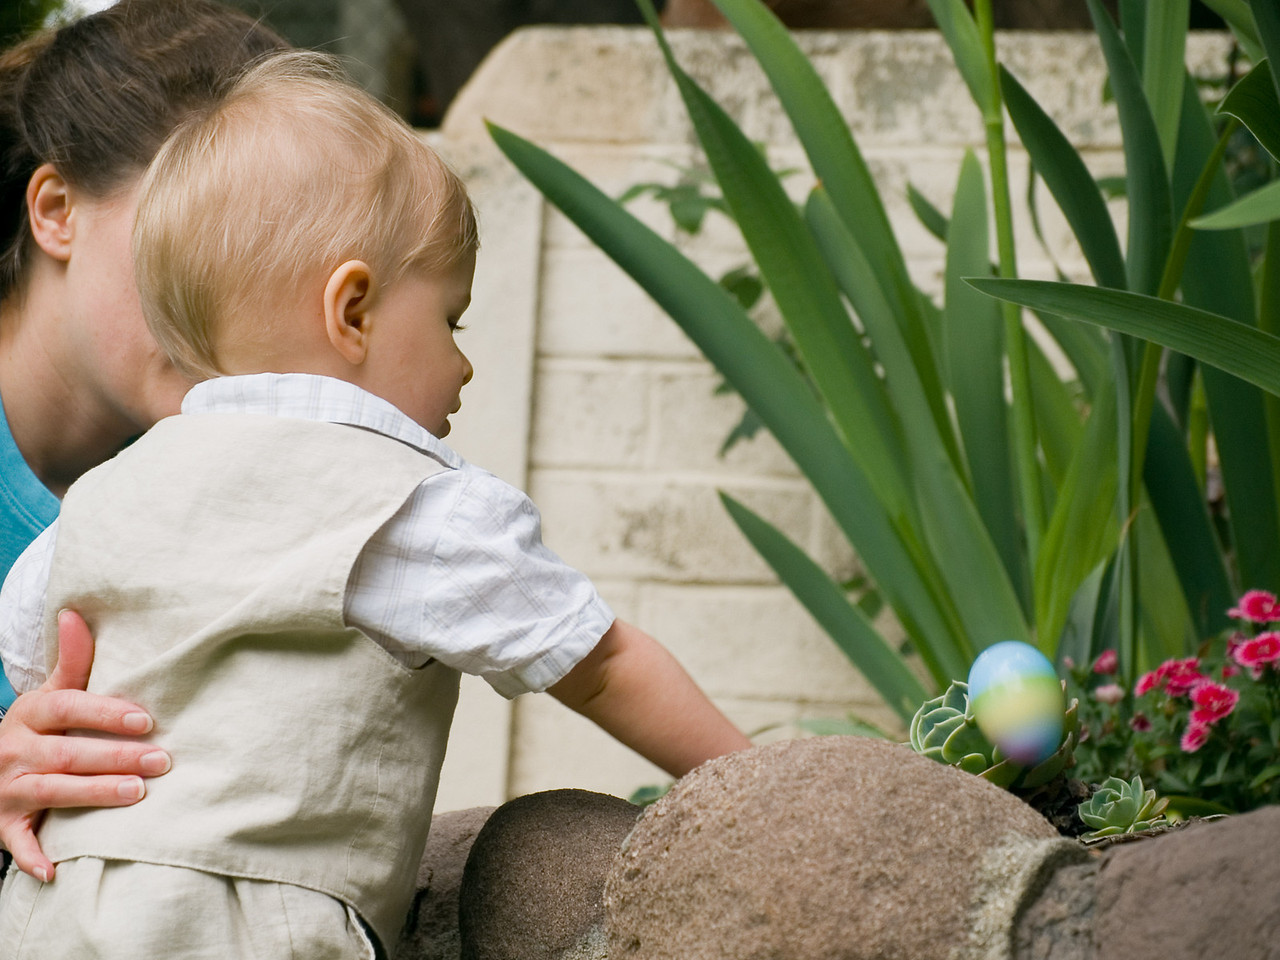 Cody trying to figure out how to get the egg out of the plant.